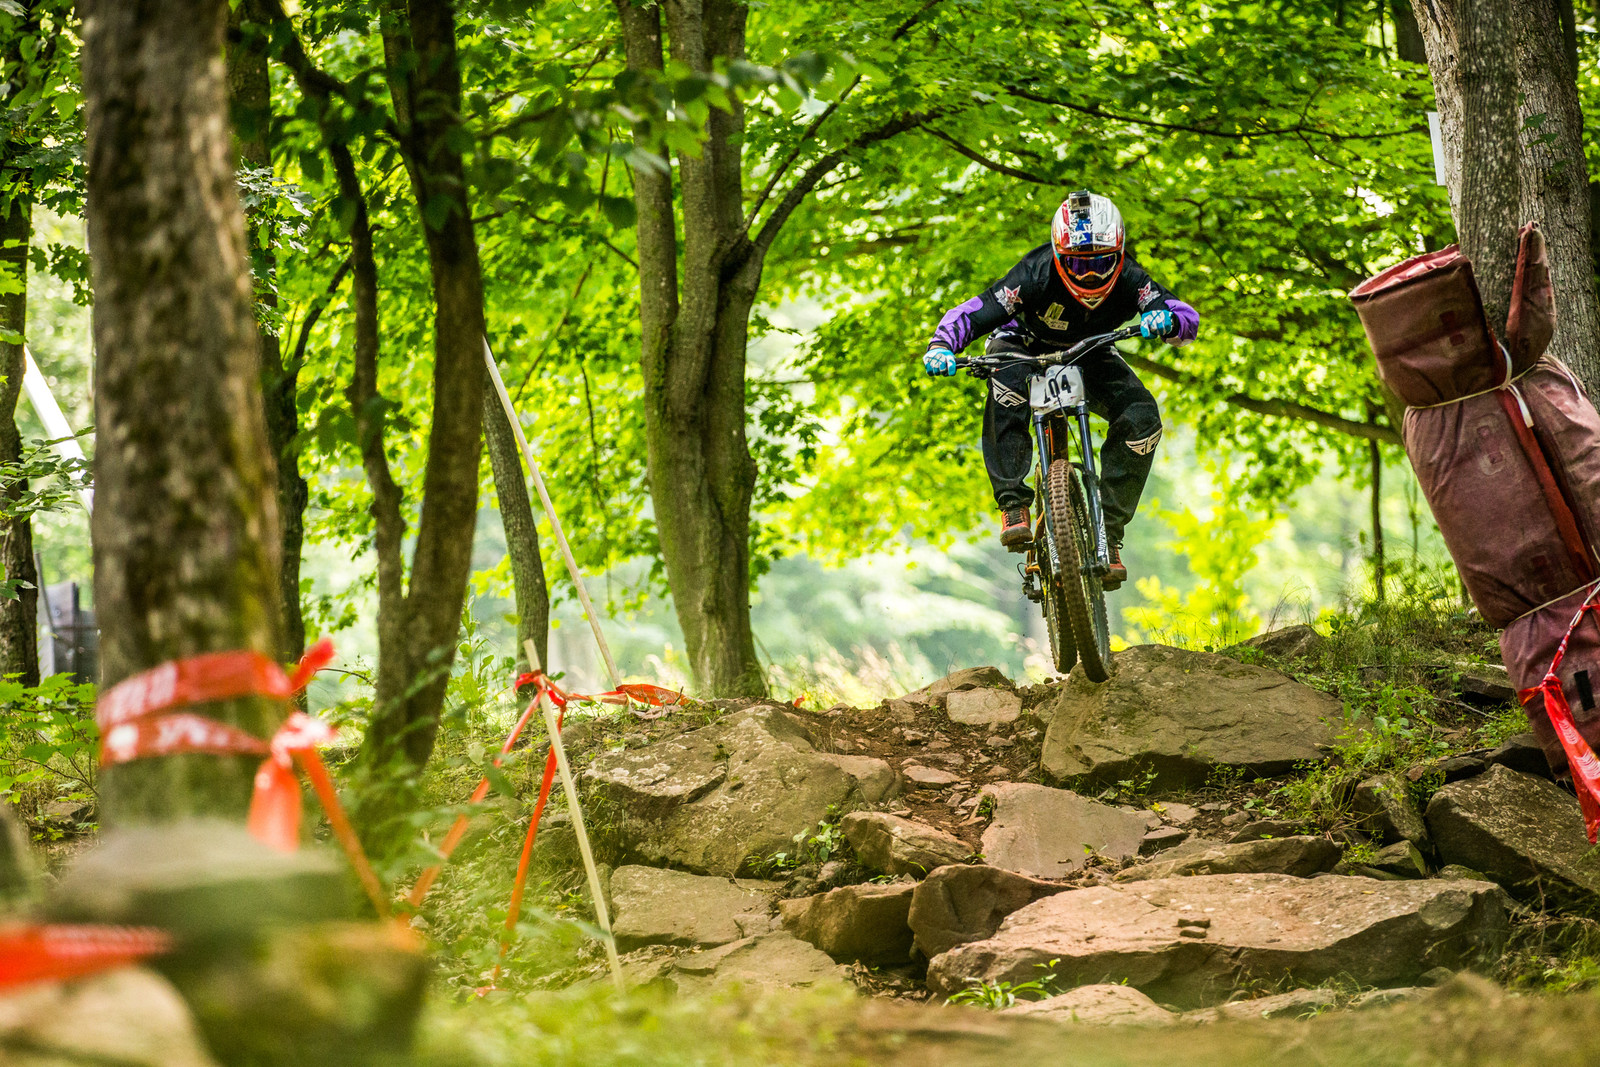 Camilo Sanchez Salazar - RACE DAY GALLERY - 2017 Pro GRT, Windham, NY - Mountain Biking Pictures - Vital MTB